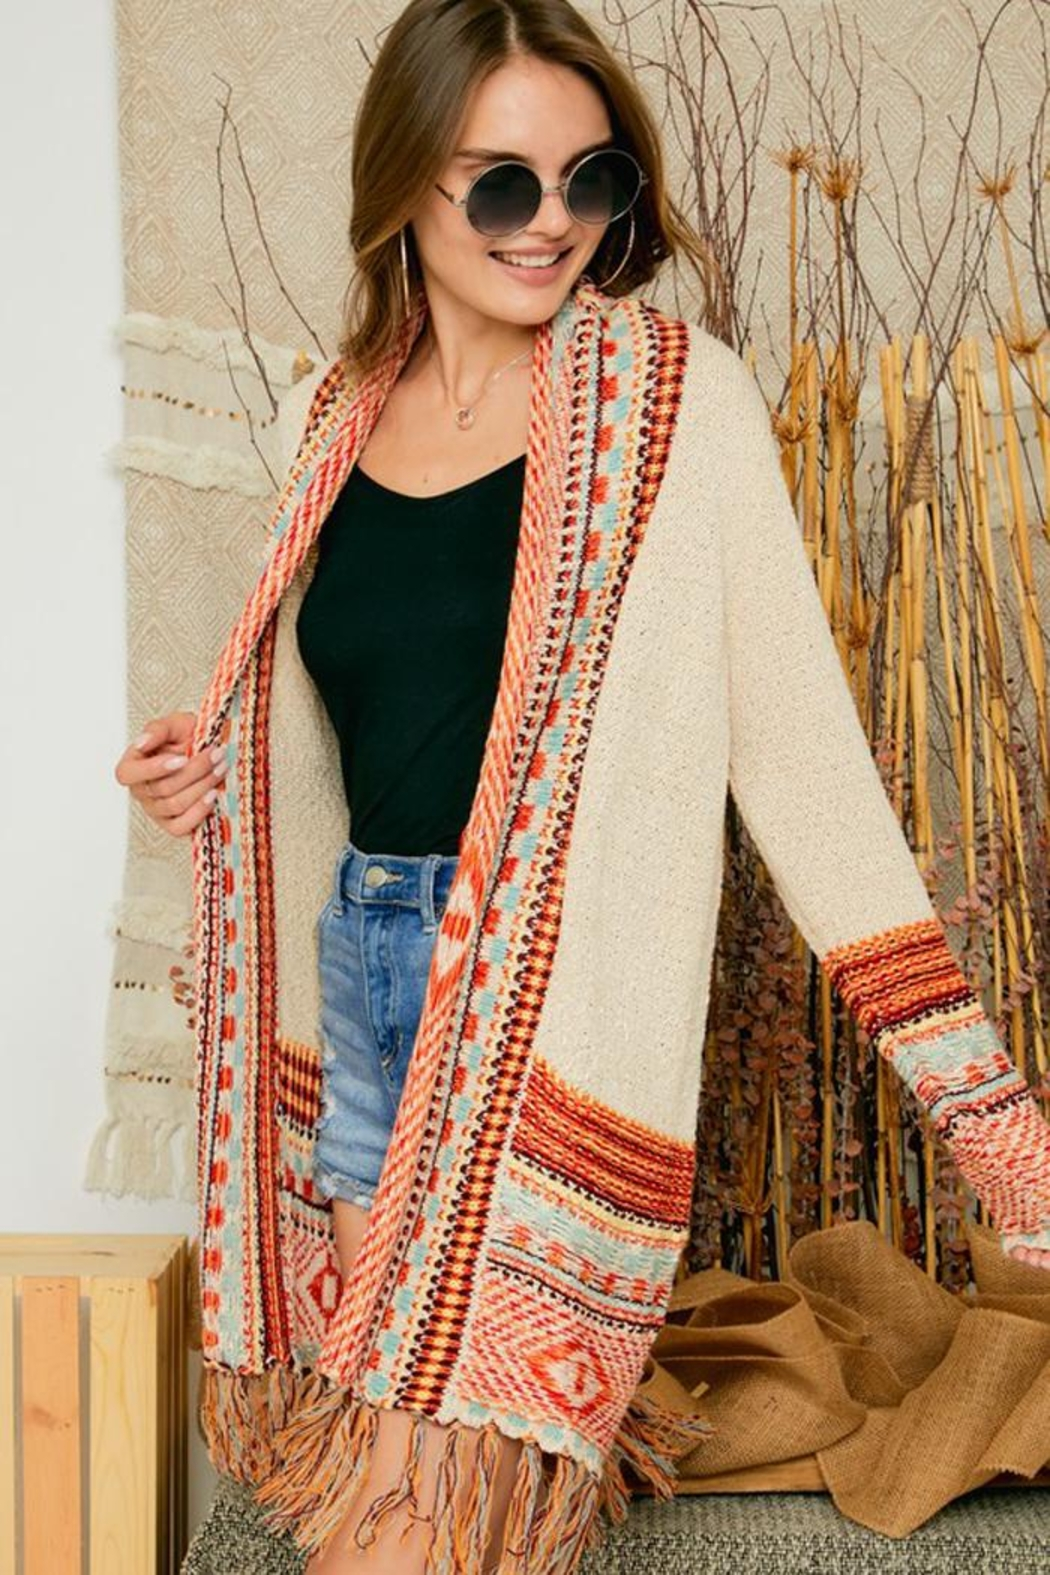 Adora Aztec Tribal Patterned Sweater Knit Cardigan With Fringes - Main Image